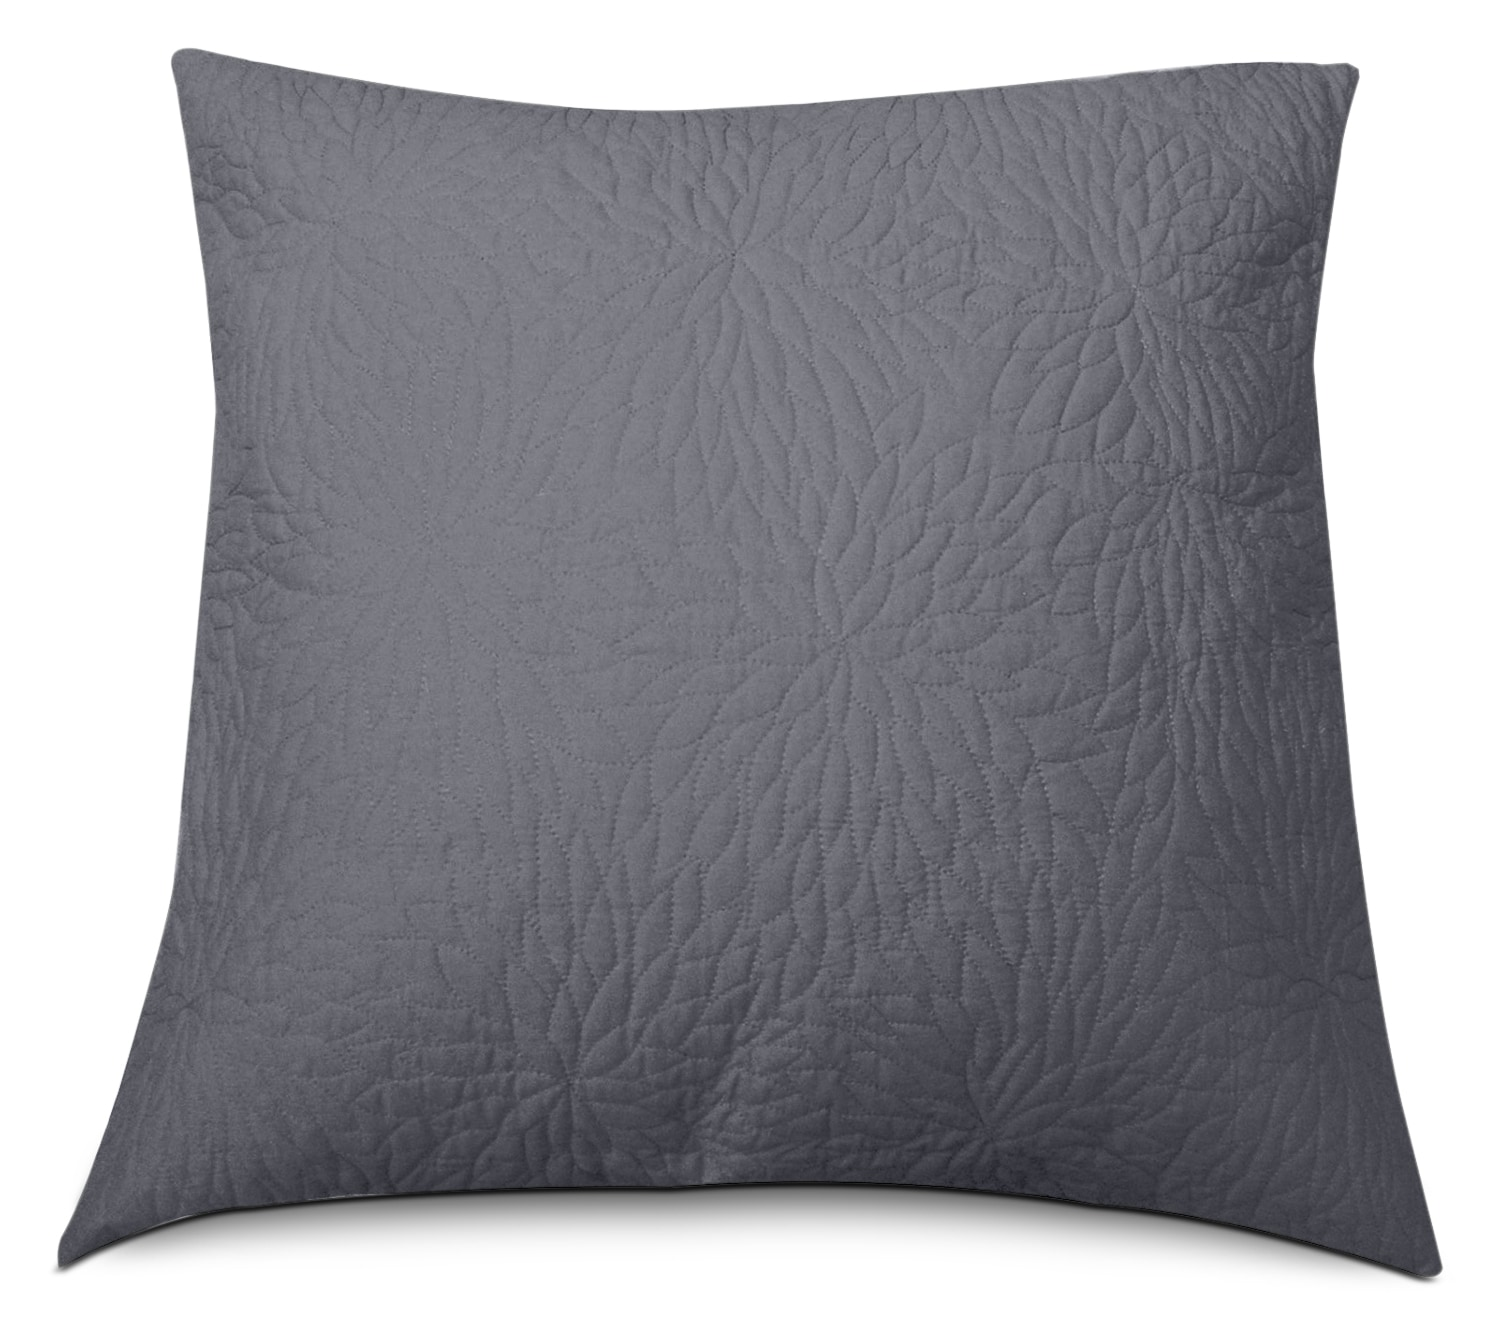 Chrysanthemum Euro Cushion - Grey